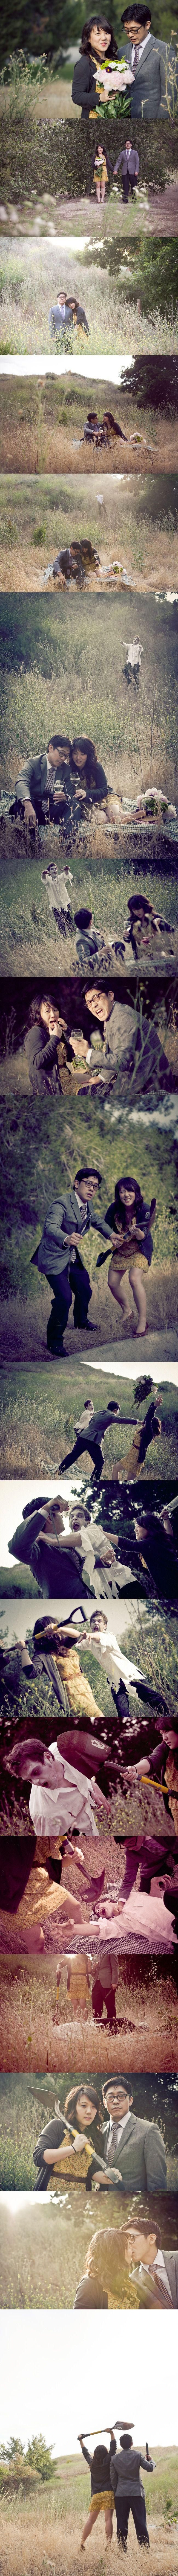 Best wedding announcement pictures ever!!